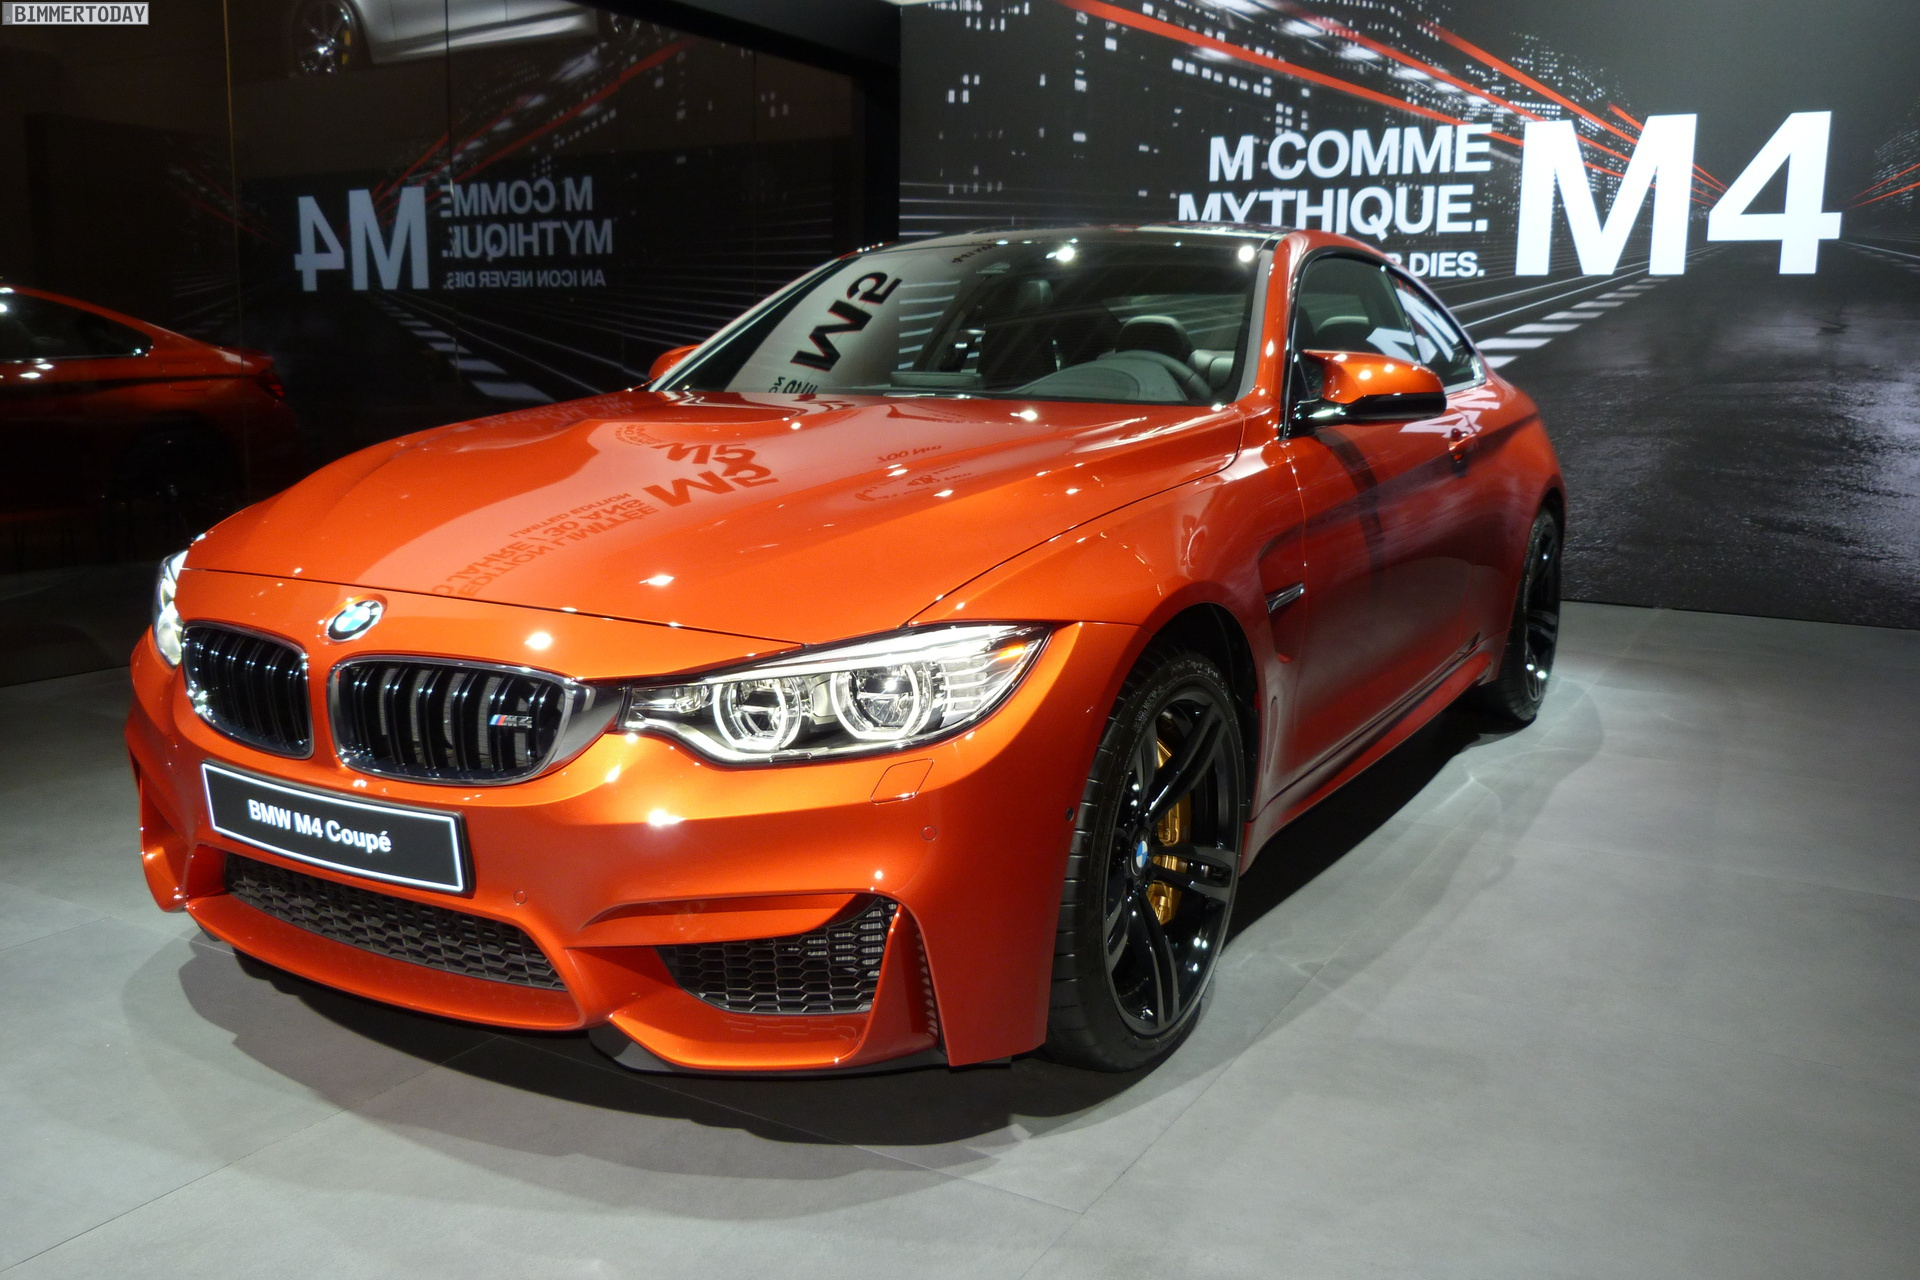 2014 Paris Motor Show Bmw M4 Coupe In Sakhir Orange